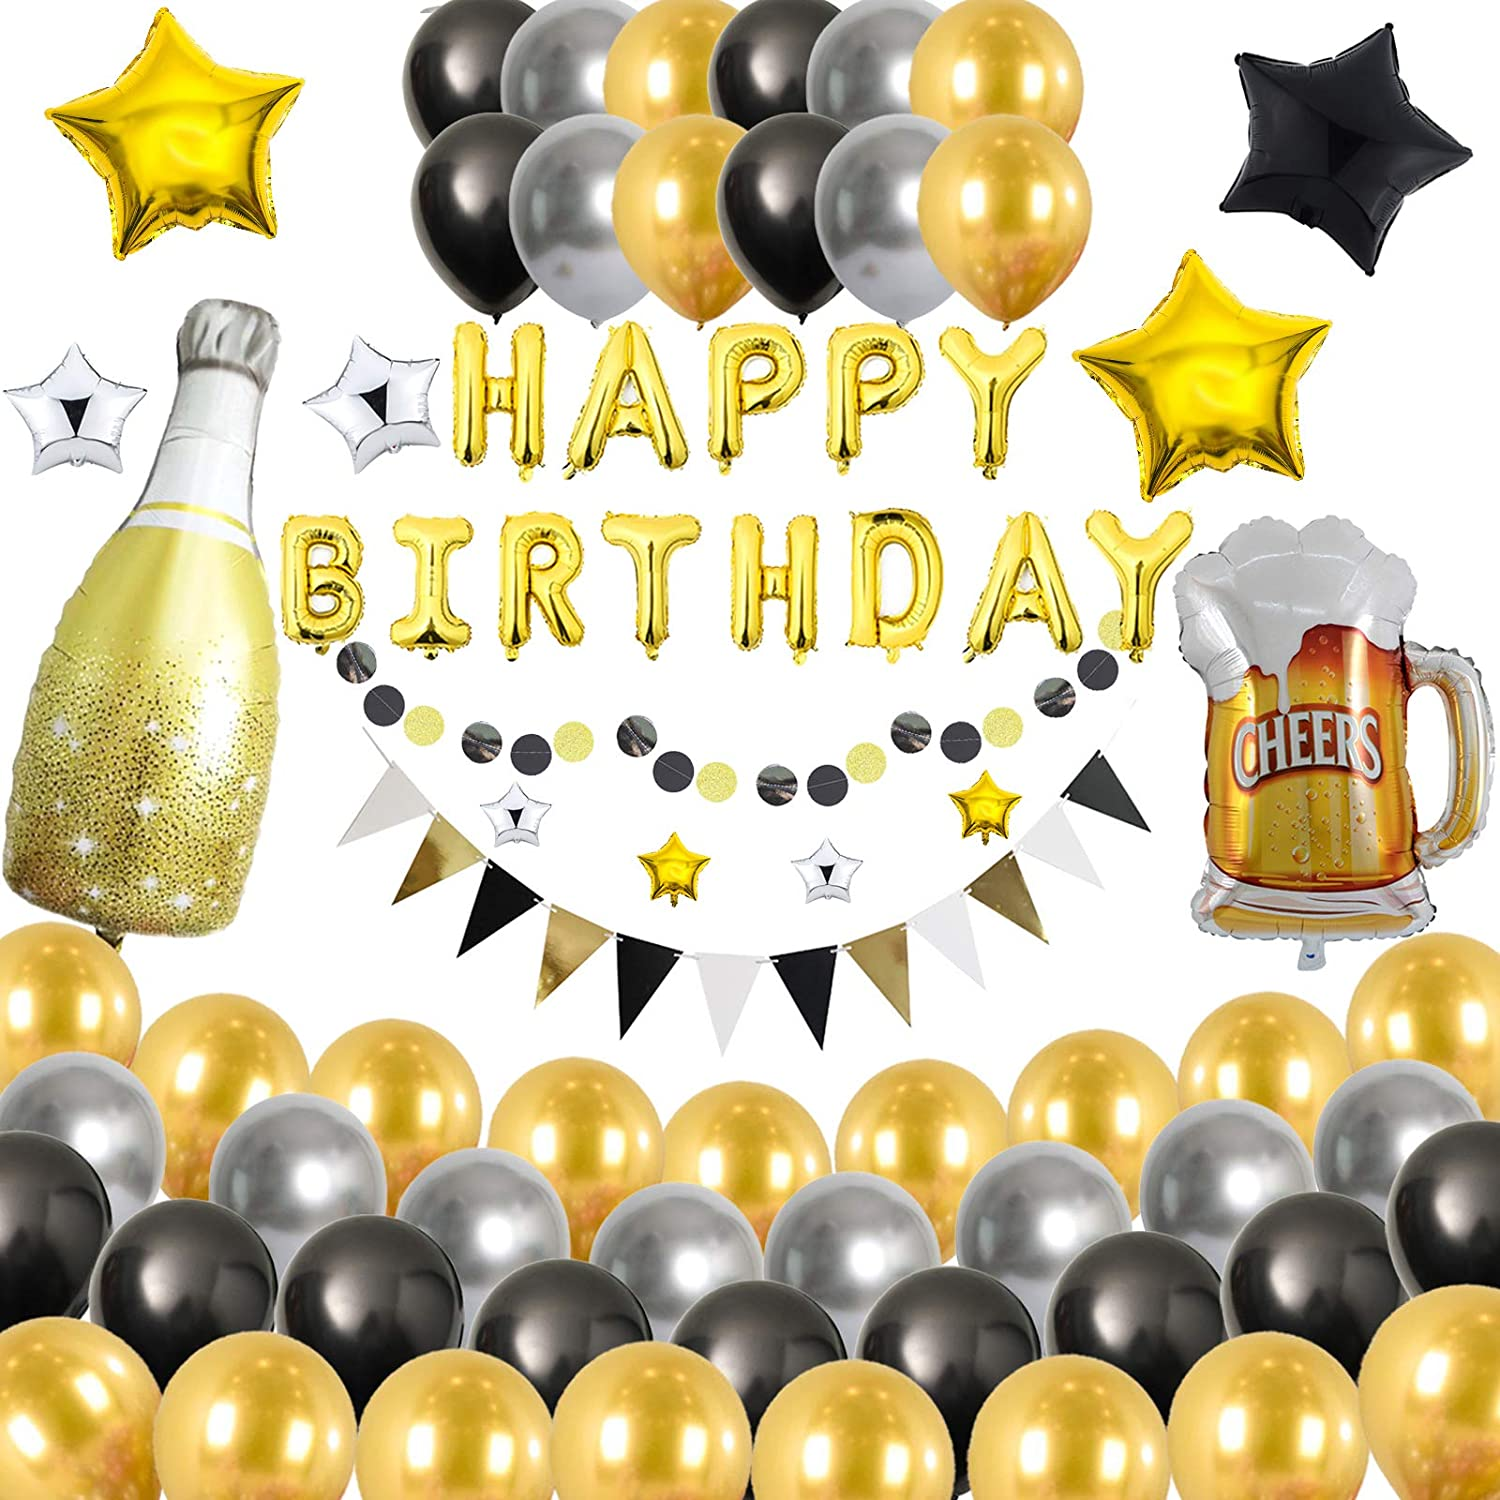 Birthday Party Decoration for Adult Happy Birthday Banner Black and White Balloons Party Supplies with String Light for Men and Women All Total 60 Pcs